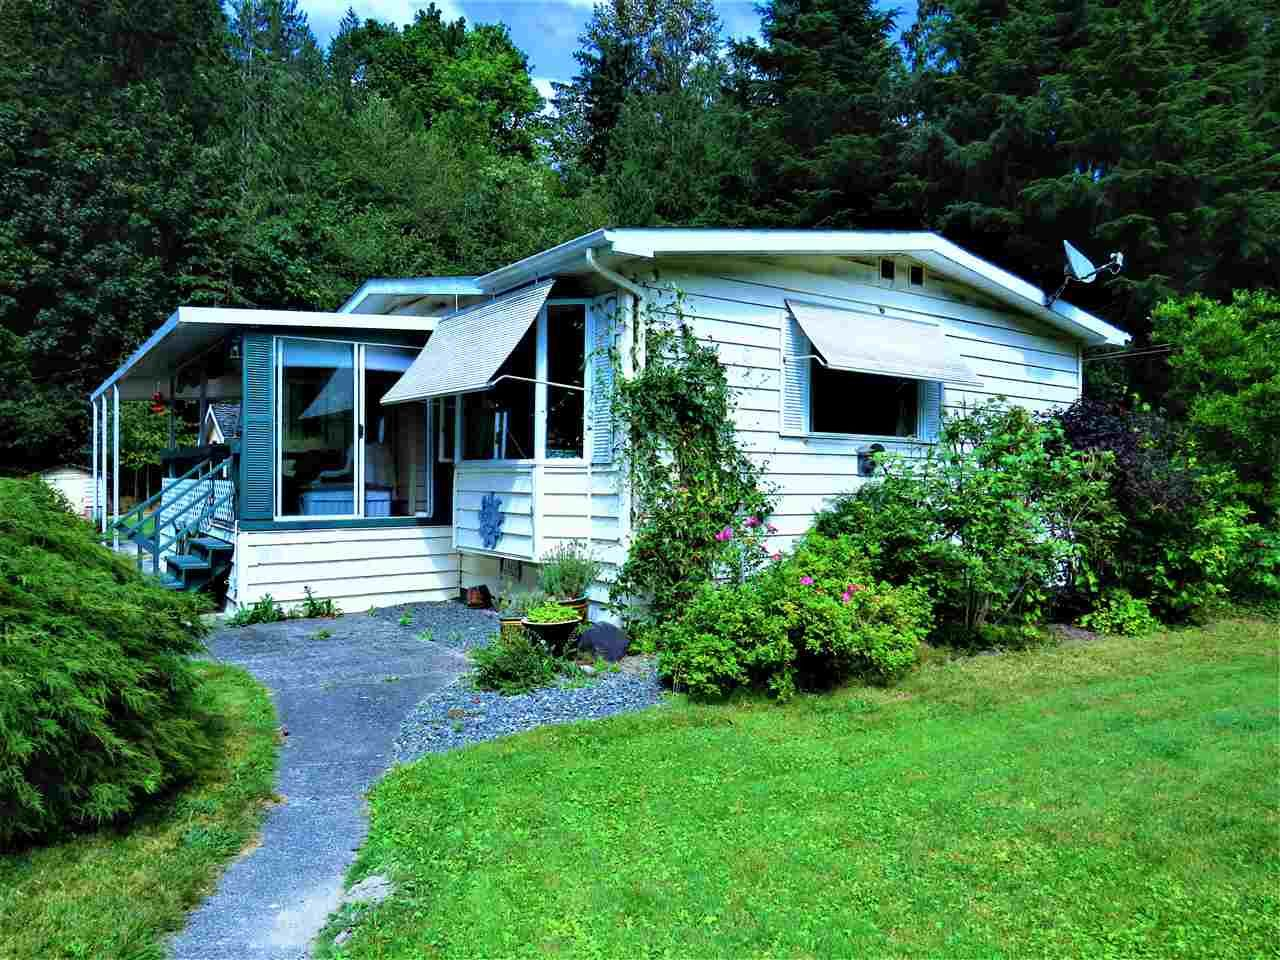 """Main Photo: 1 50801 O'BYRNE Road in Sardis: Chilliwack River Valley Manufactured Home for sale in """"CHWK RVR RV &CMP"""" : MLS®# R2398134"""